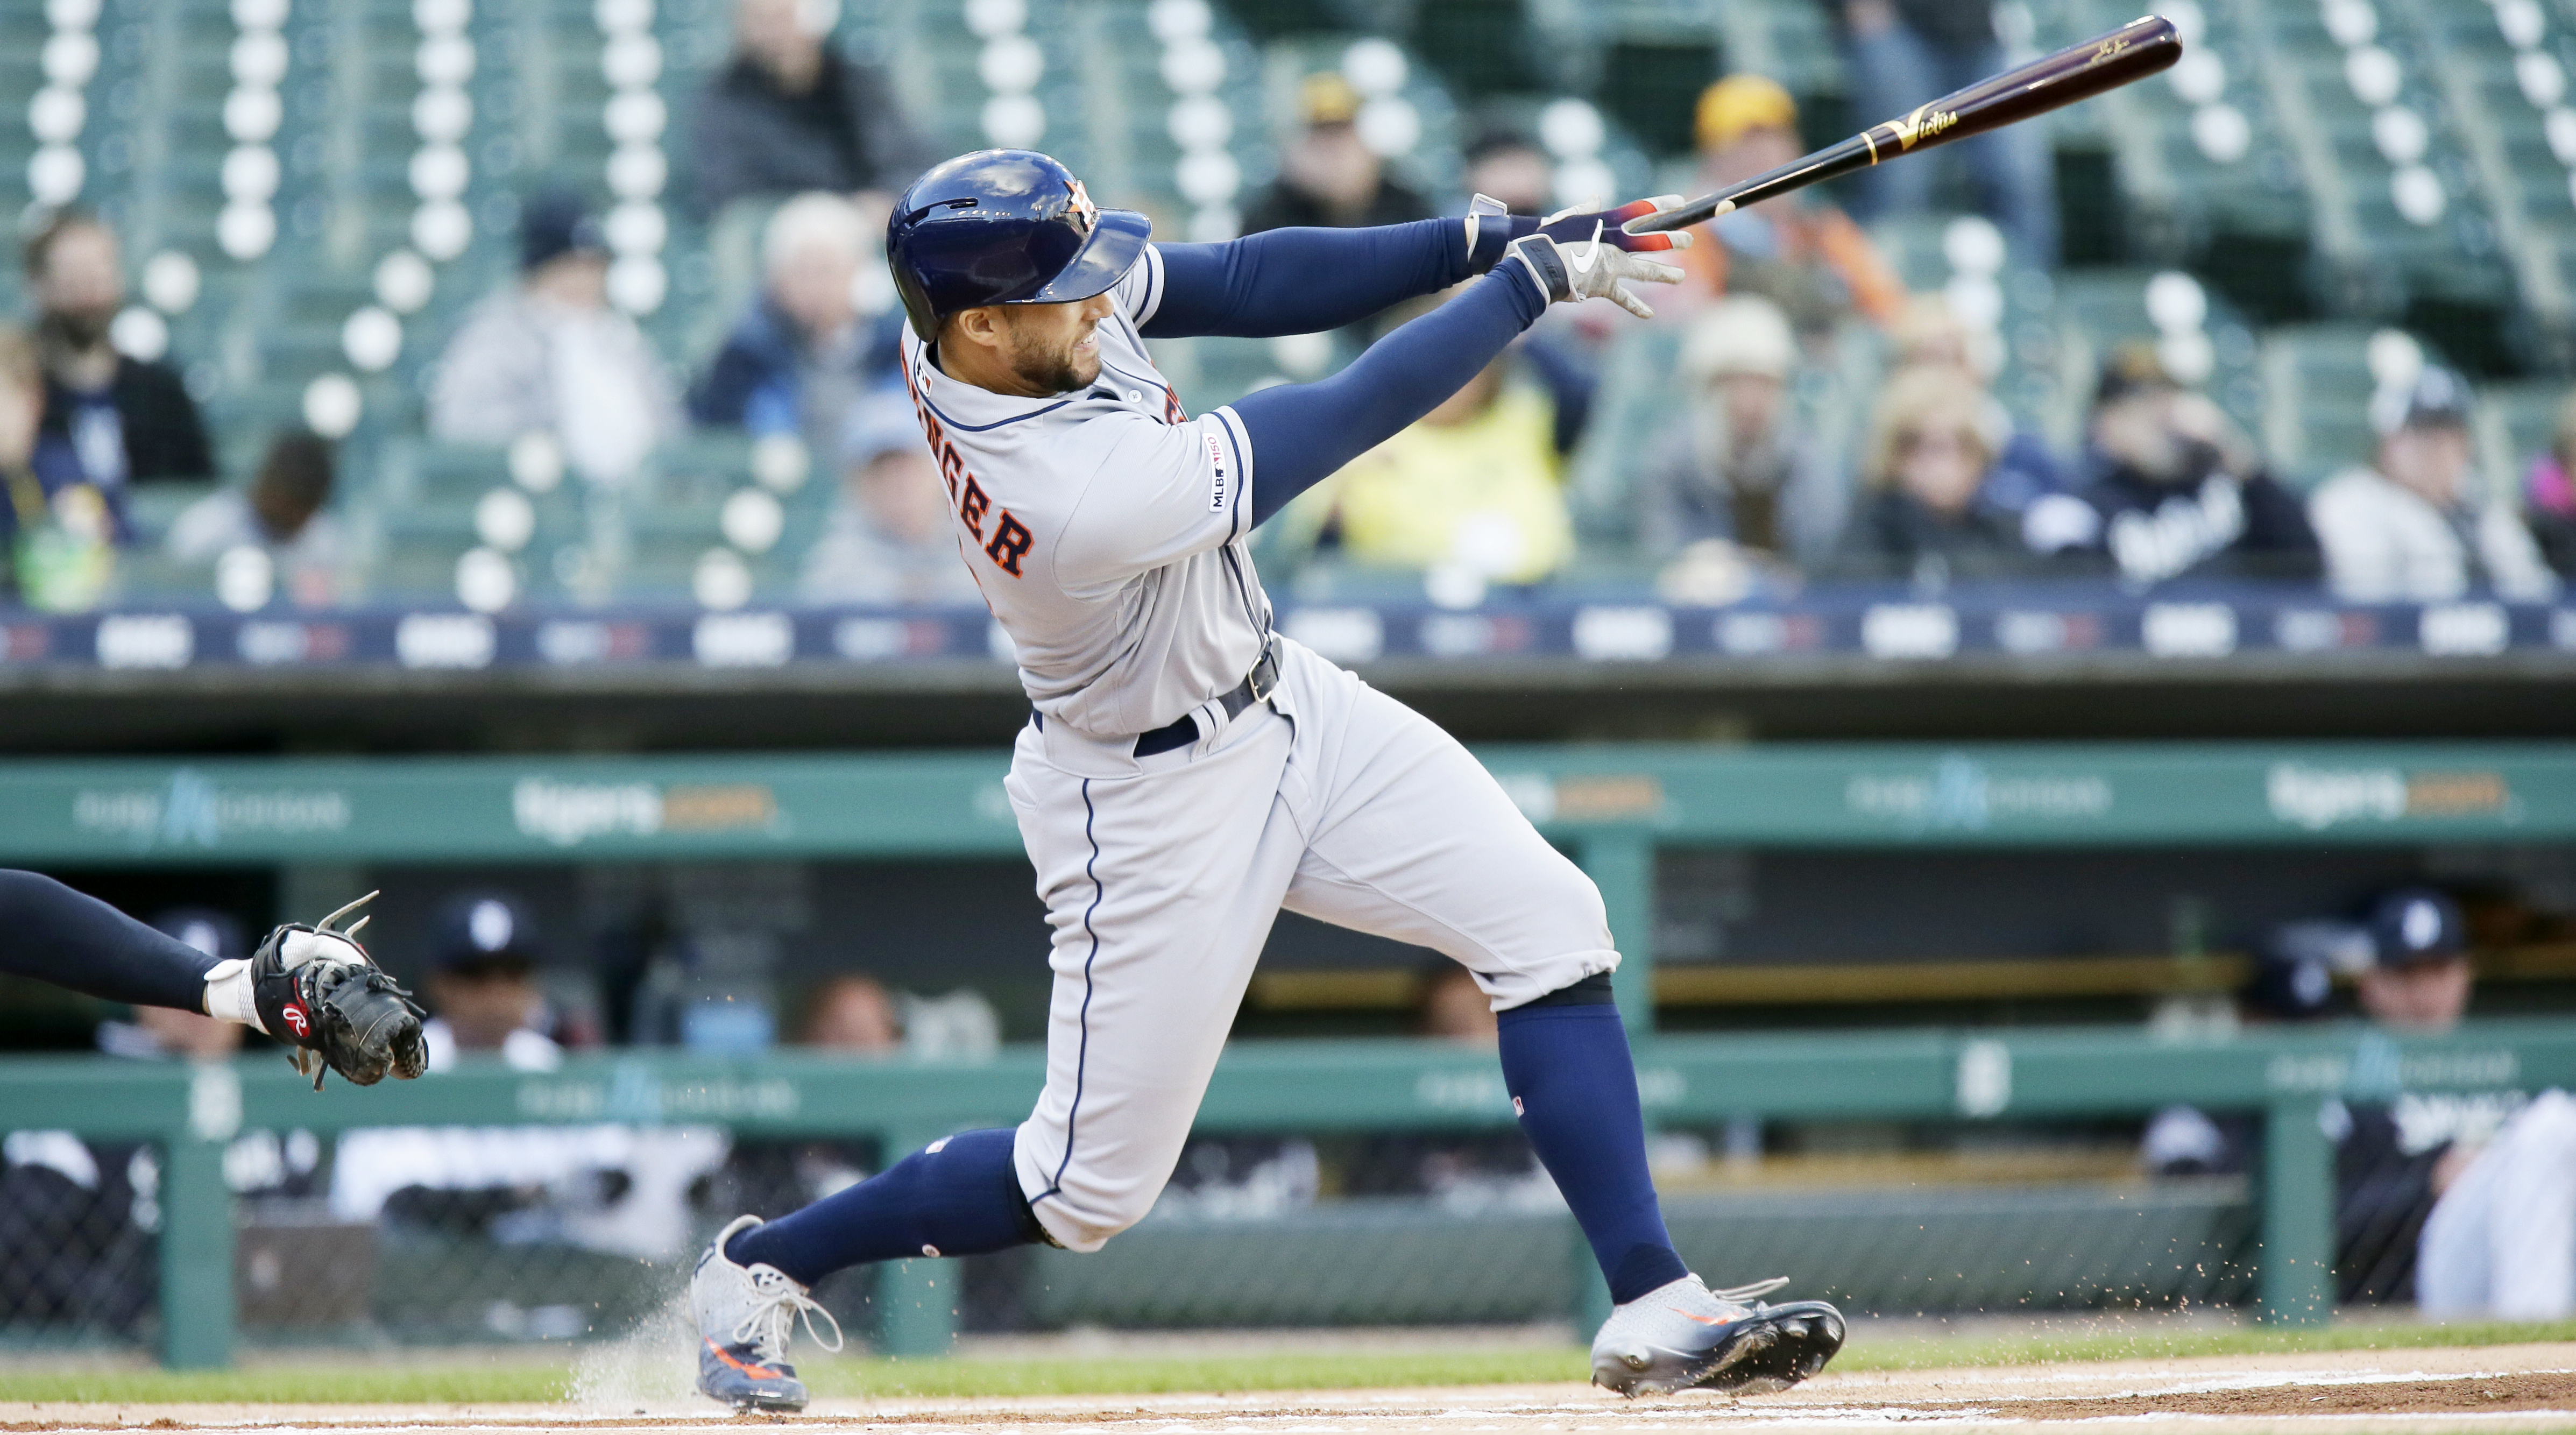 George Springer is in the midst of an MVP-caliber season.